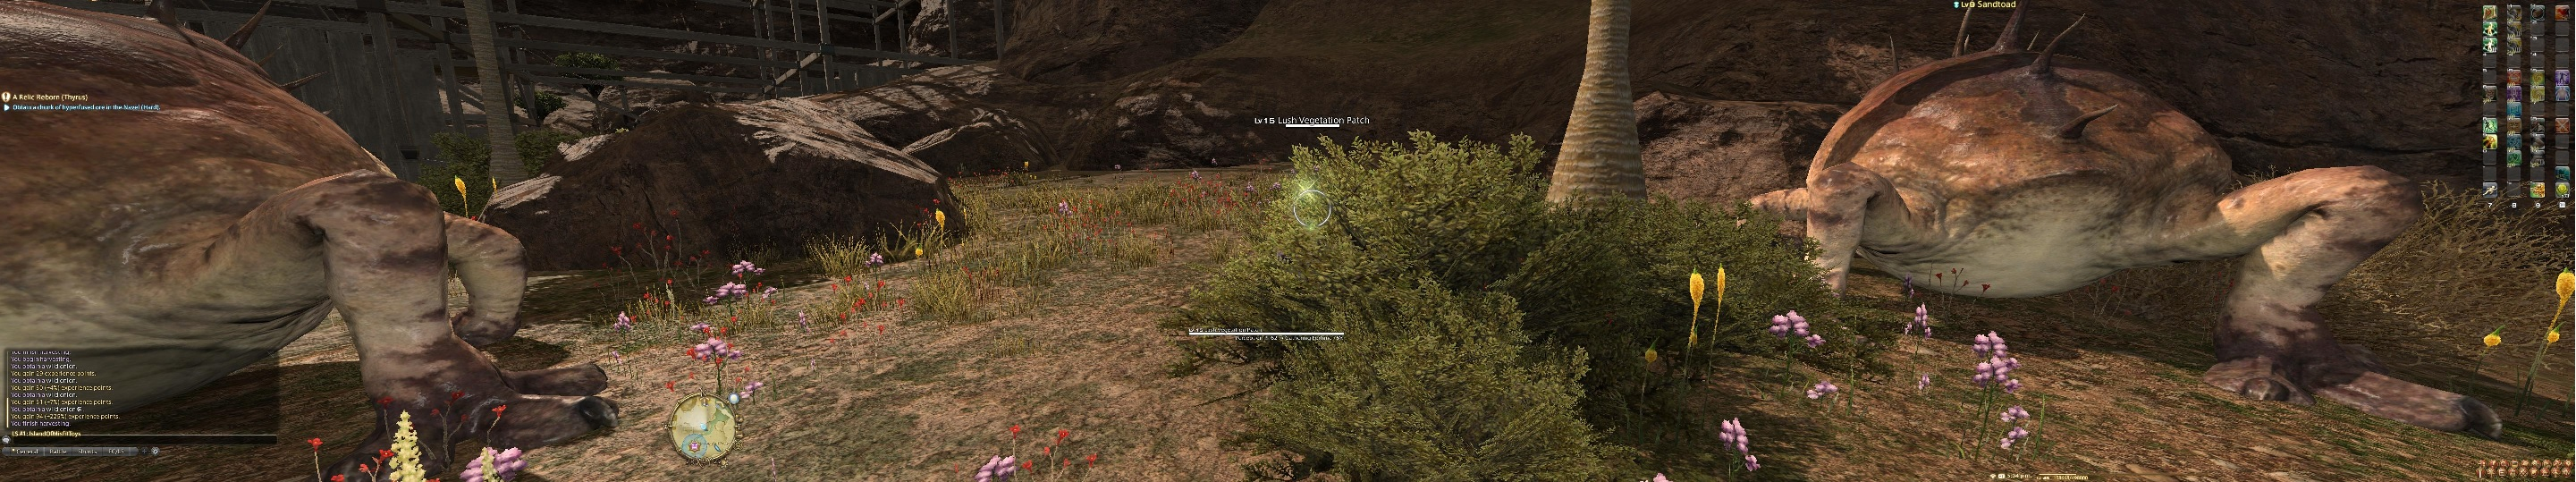 buffy ffxiv make petbar command toggle your visibility pictures remember anyone post know